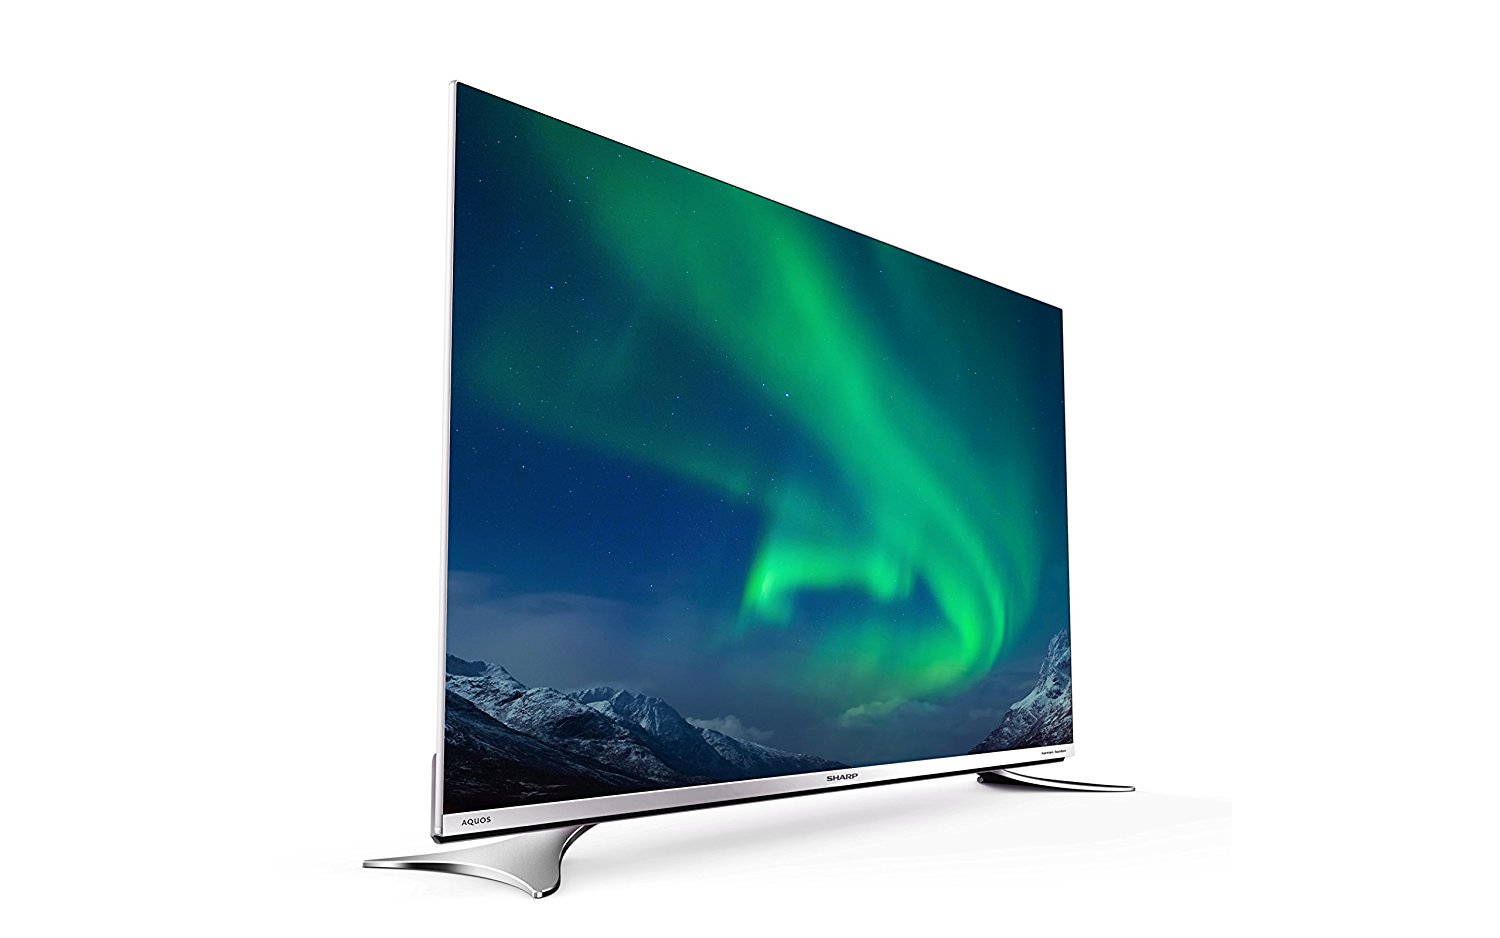 amazon angebote am 15 3 sharp 49 zoll uhd fernseher intel ssd 800 gb mein. Black Bedroom Furniture Sets. Home Design Ideas